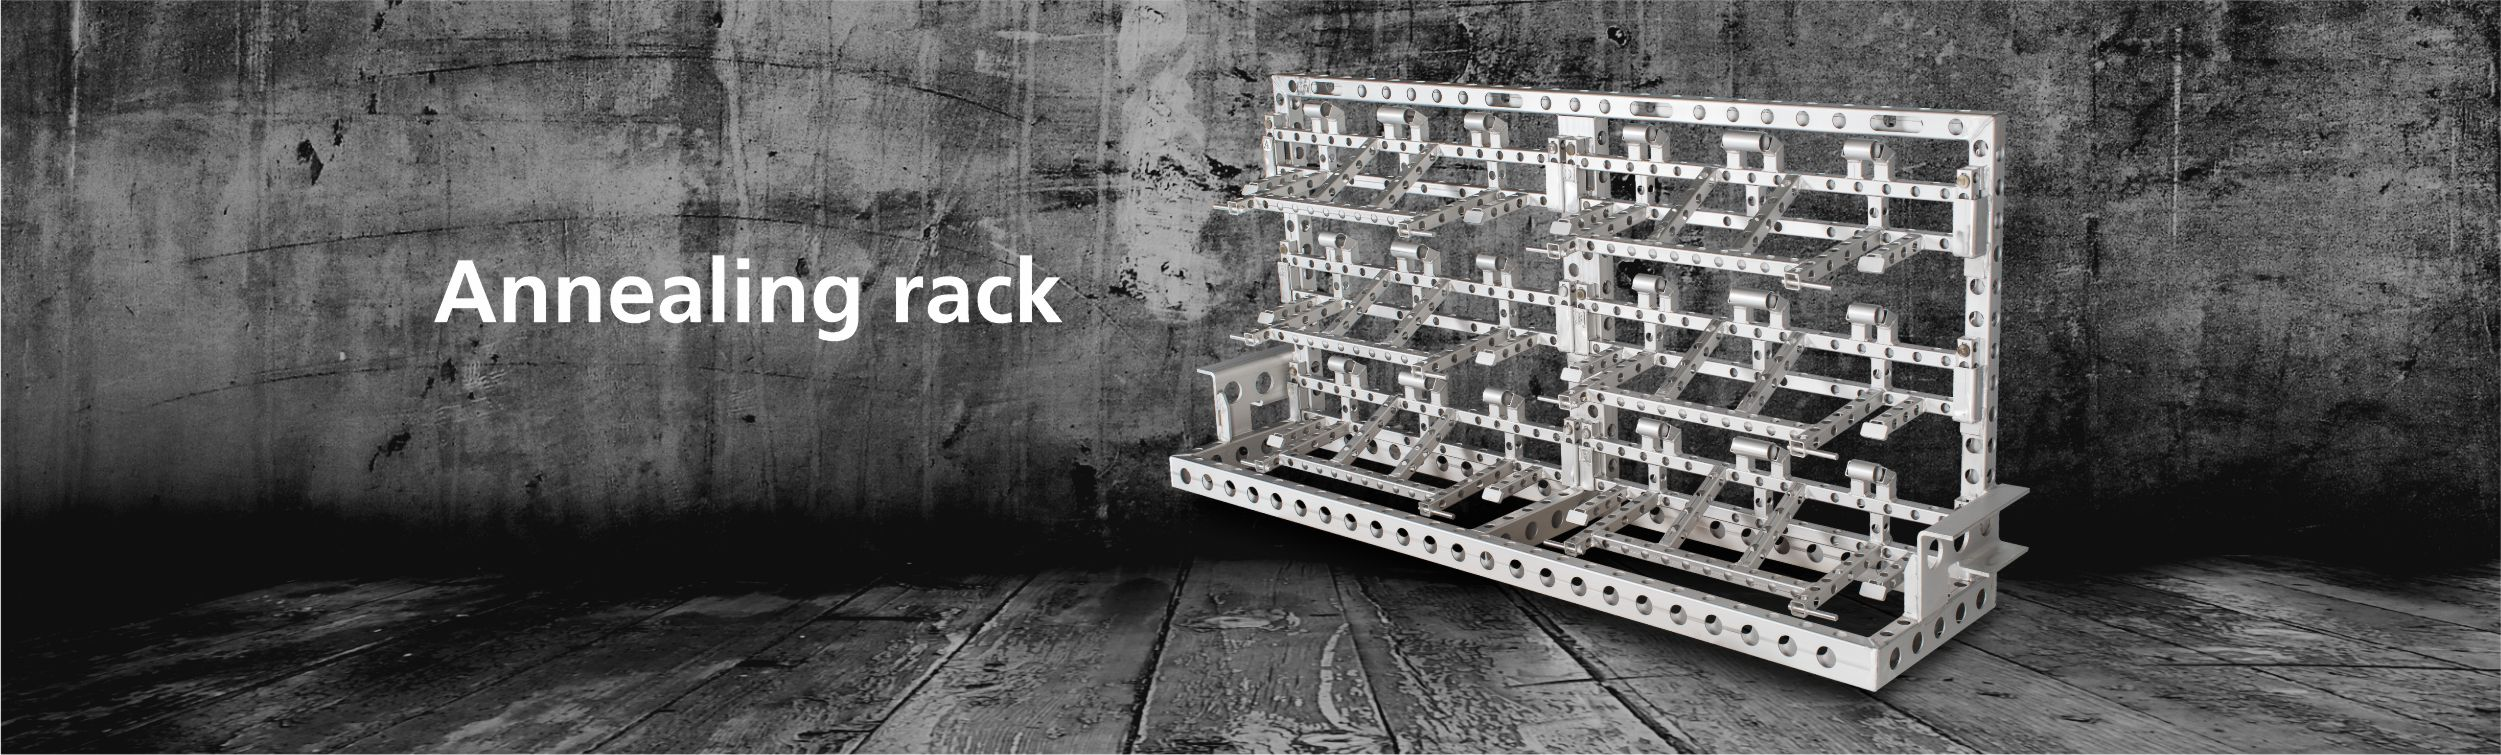 annealing_rack